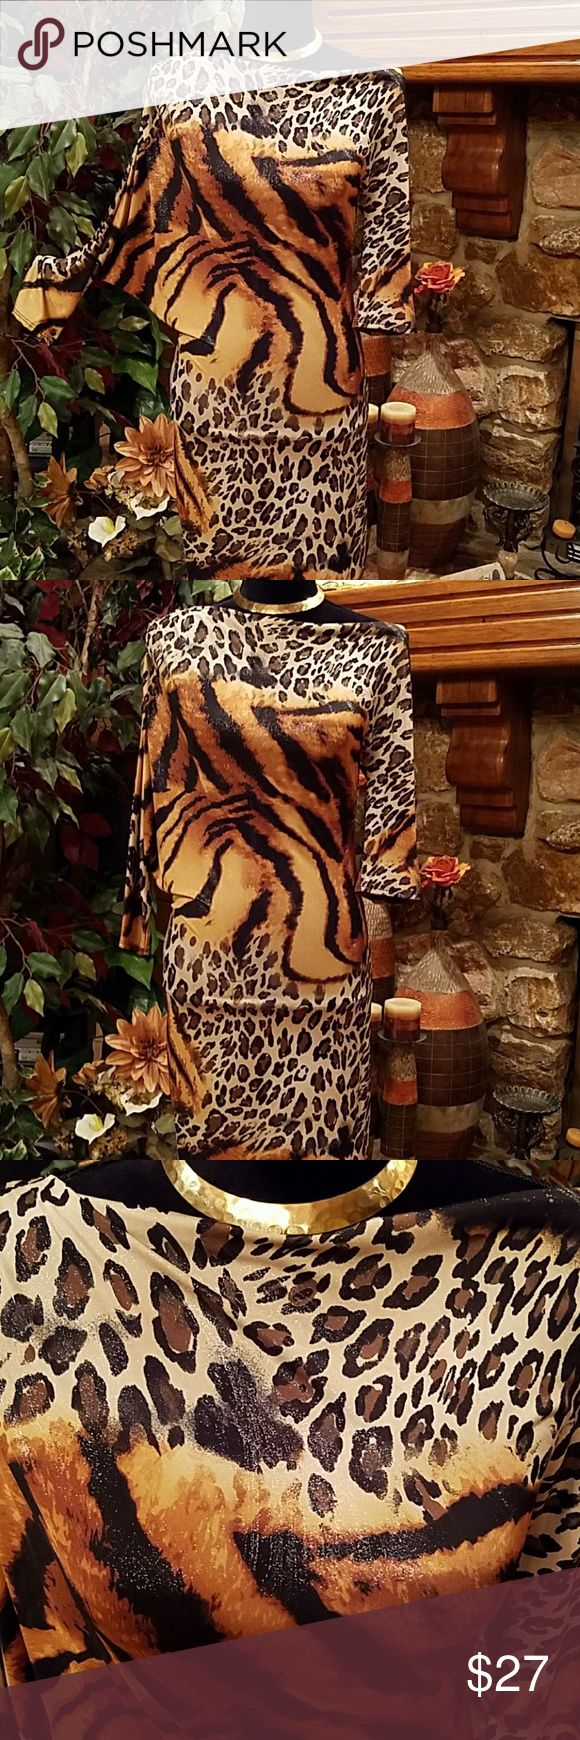 """Metallic Animal Print Dress NWOT/This dress has  an asymmetrical neckline and sleeves. It can be worn both on or off the shoulder. The right sleeve is 19"""" and has a bat wing design. The left sleeve is 15"""". Lying flat, the length is 33"""", the natural waist is 14"""". The bust line is quite roomy due to the unique design, 15"""" plus. Fabric content: 92% nylon, 8% spandex. Hand washable. Accessories not included. Offers welcomed. TRUE LIGHT Dresses Asymmetrical"""